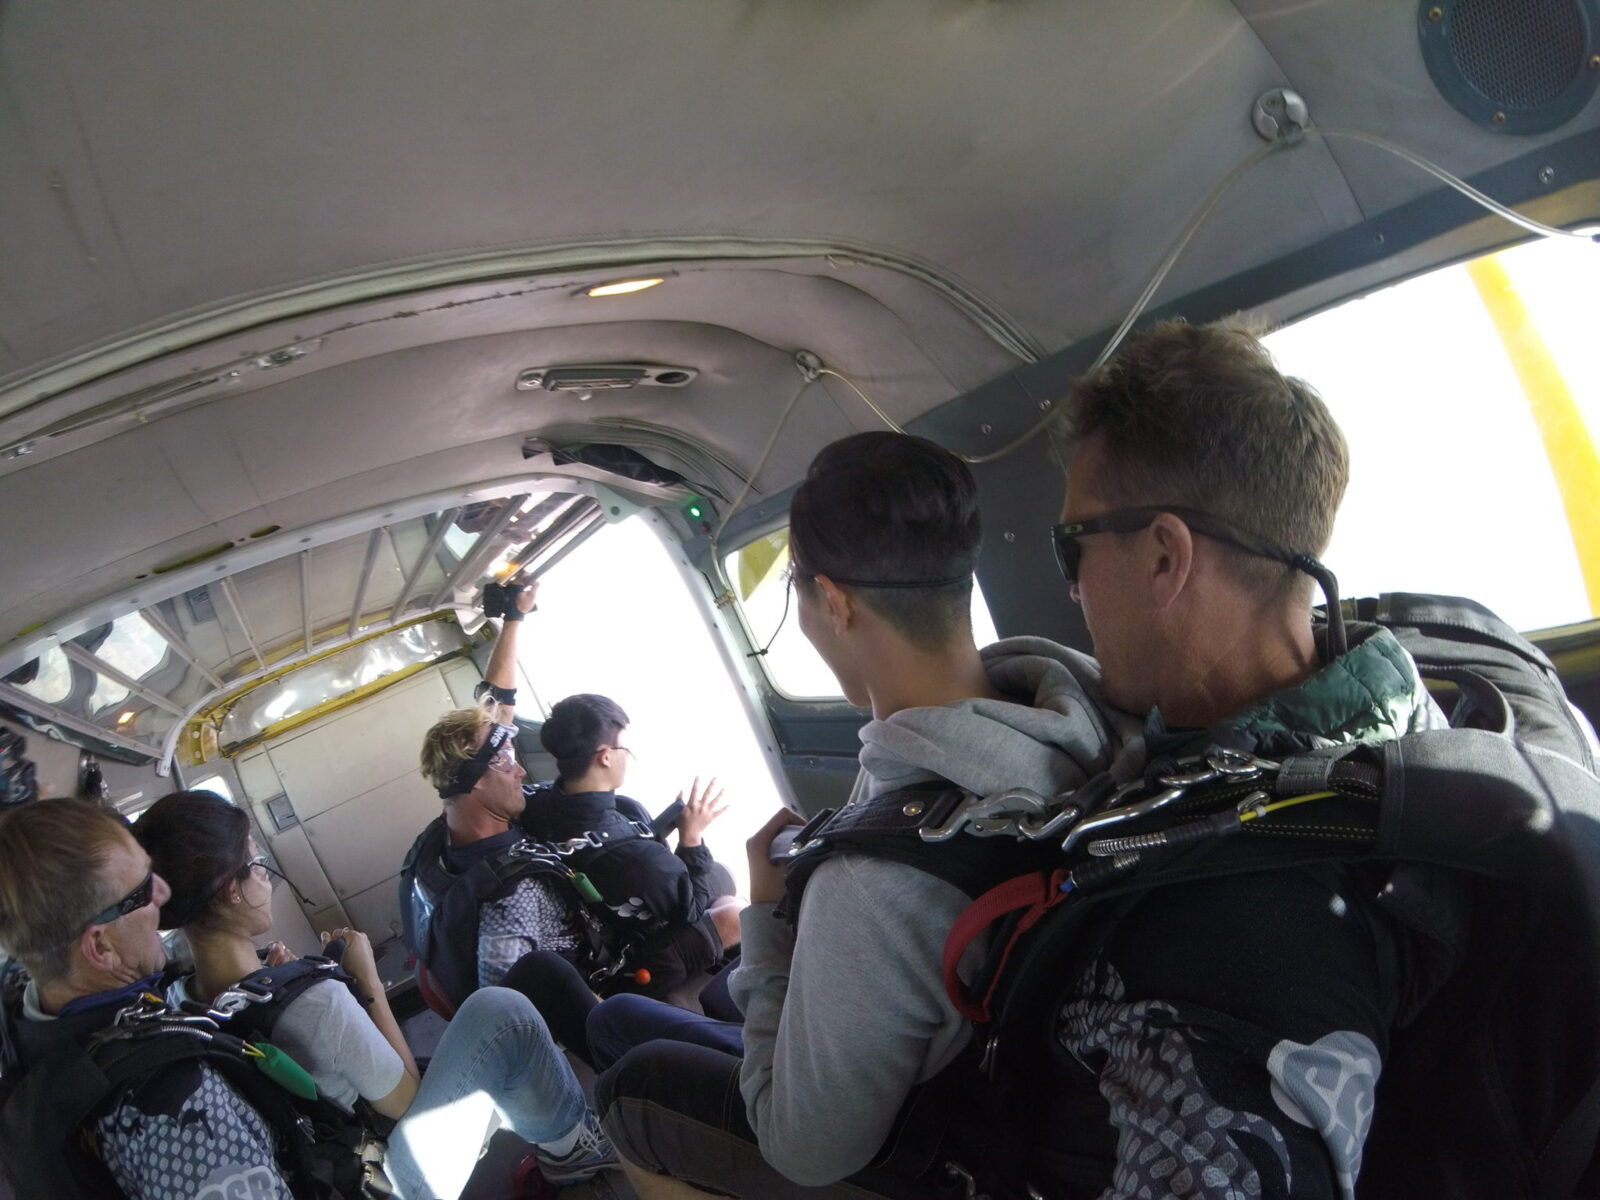 tandem skydivers getting ready to jump out of a plane at Skydive Santa Barbara